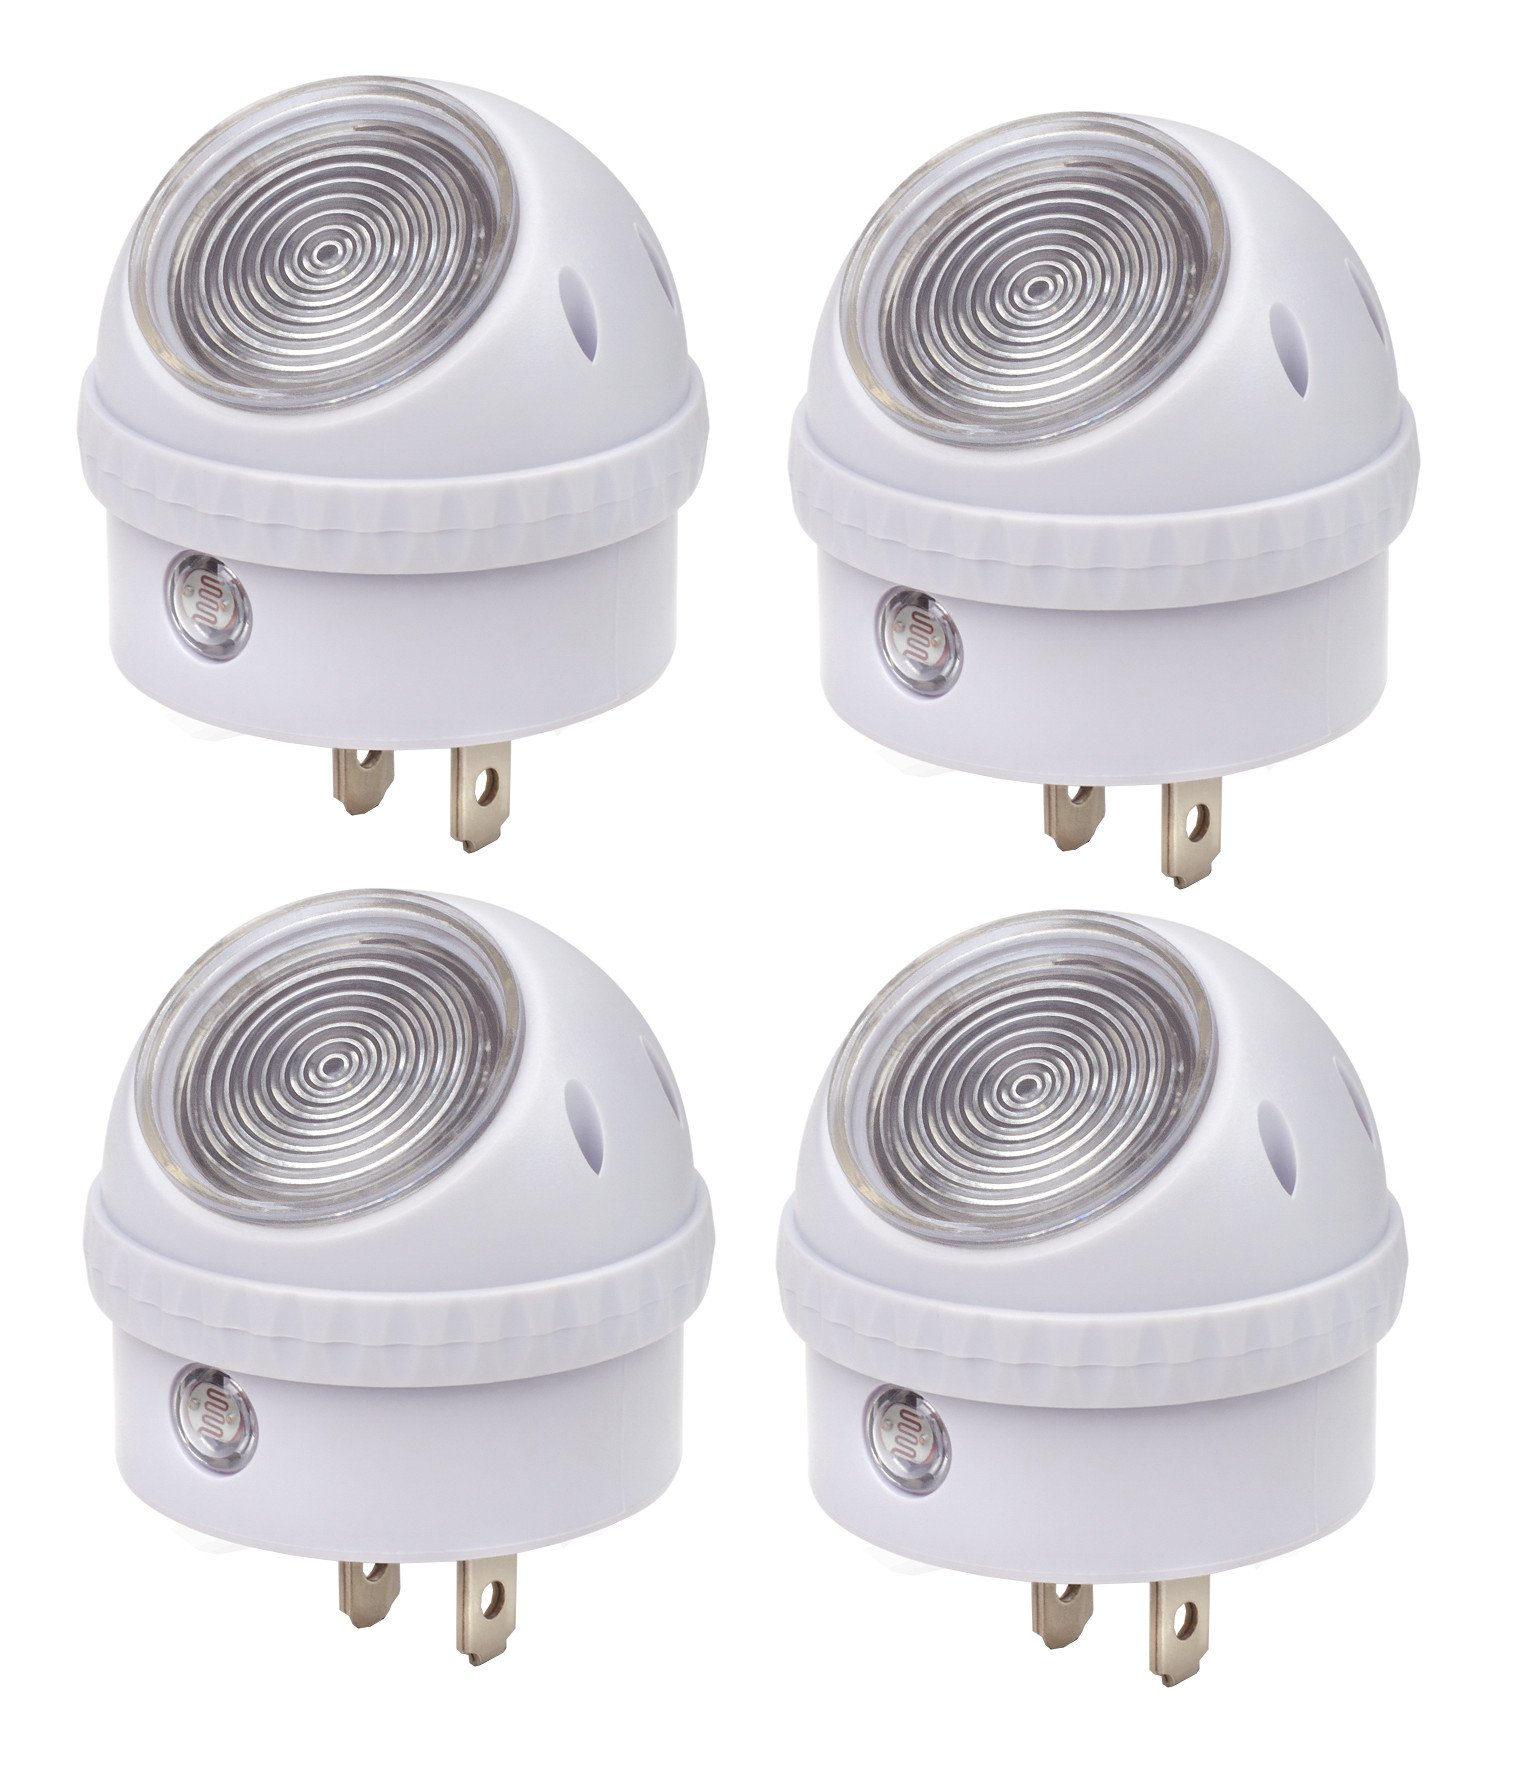 LED Night Light Lamp 4 Pieces Set, 360 Degree Rotating Head with Sensor Auto ON At Dusk, Auto OFF At Dawn for Seniors Bedroom Bathroom Kitchen Hallway Kids Baby Nursery By Perfect Life Ideas